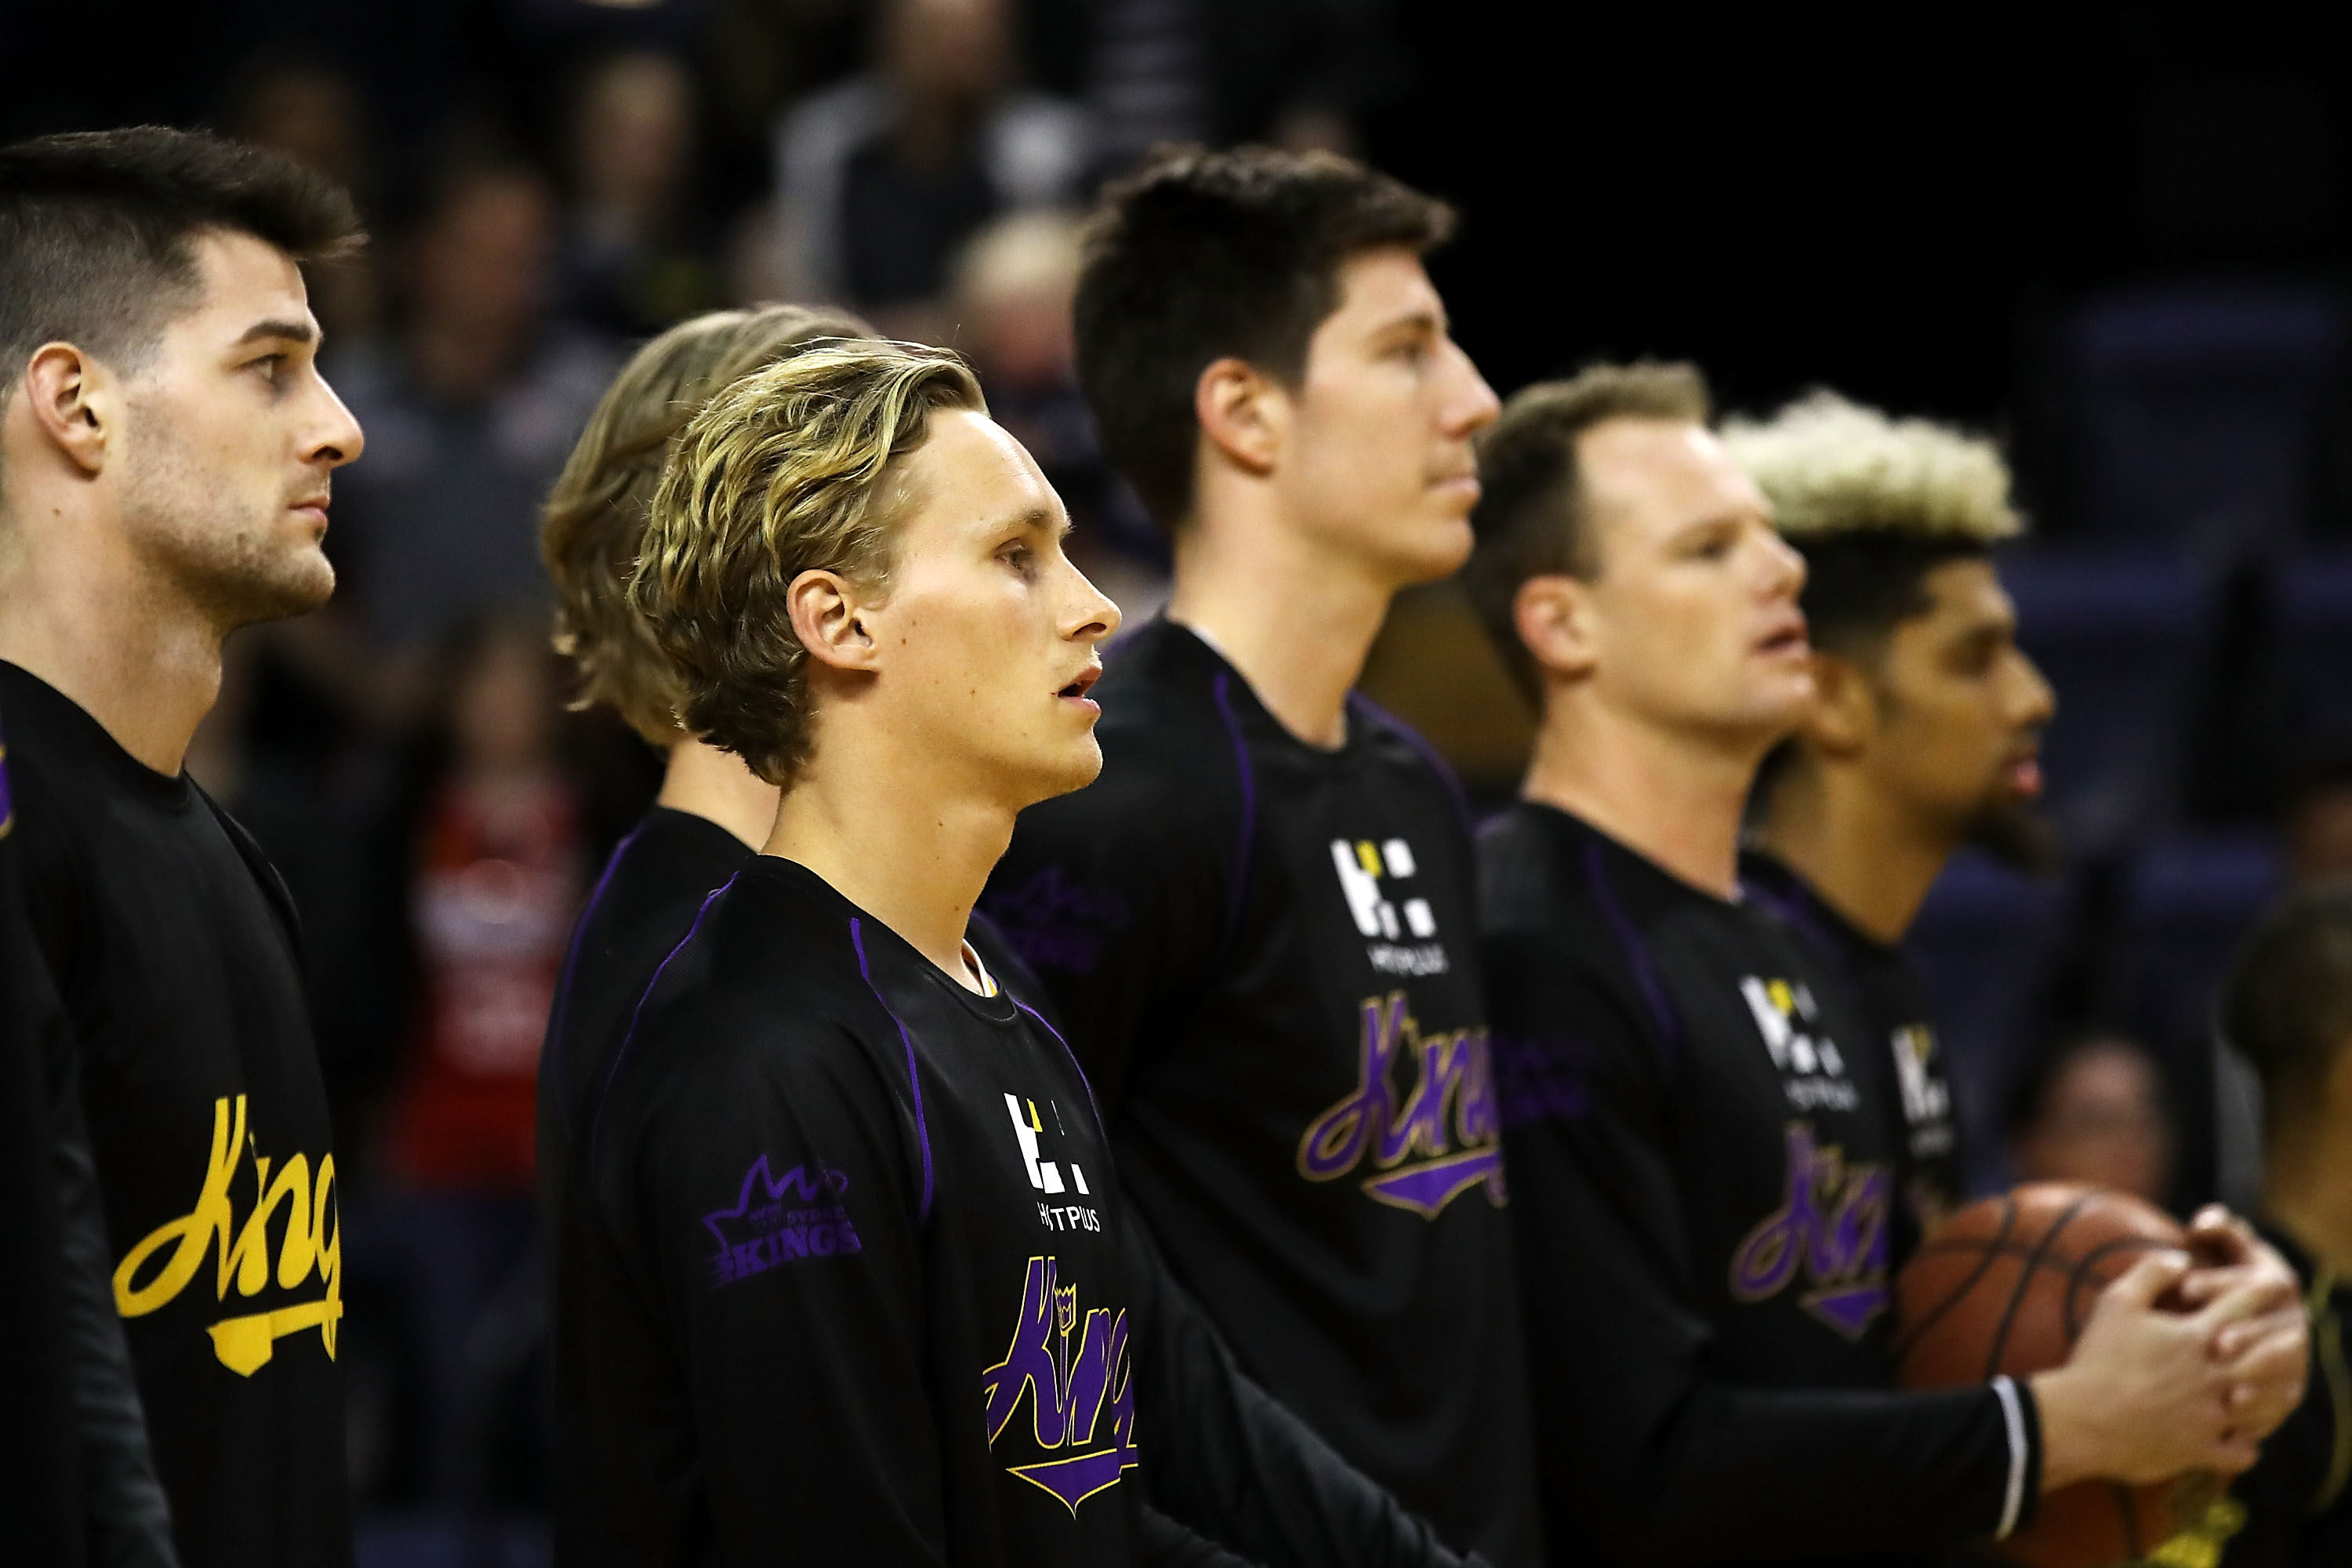 Sydney Kings Official Nationals Say Faulty Circuit Breaker Not Taylor Swift Caused Power